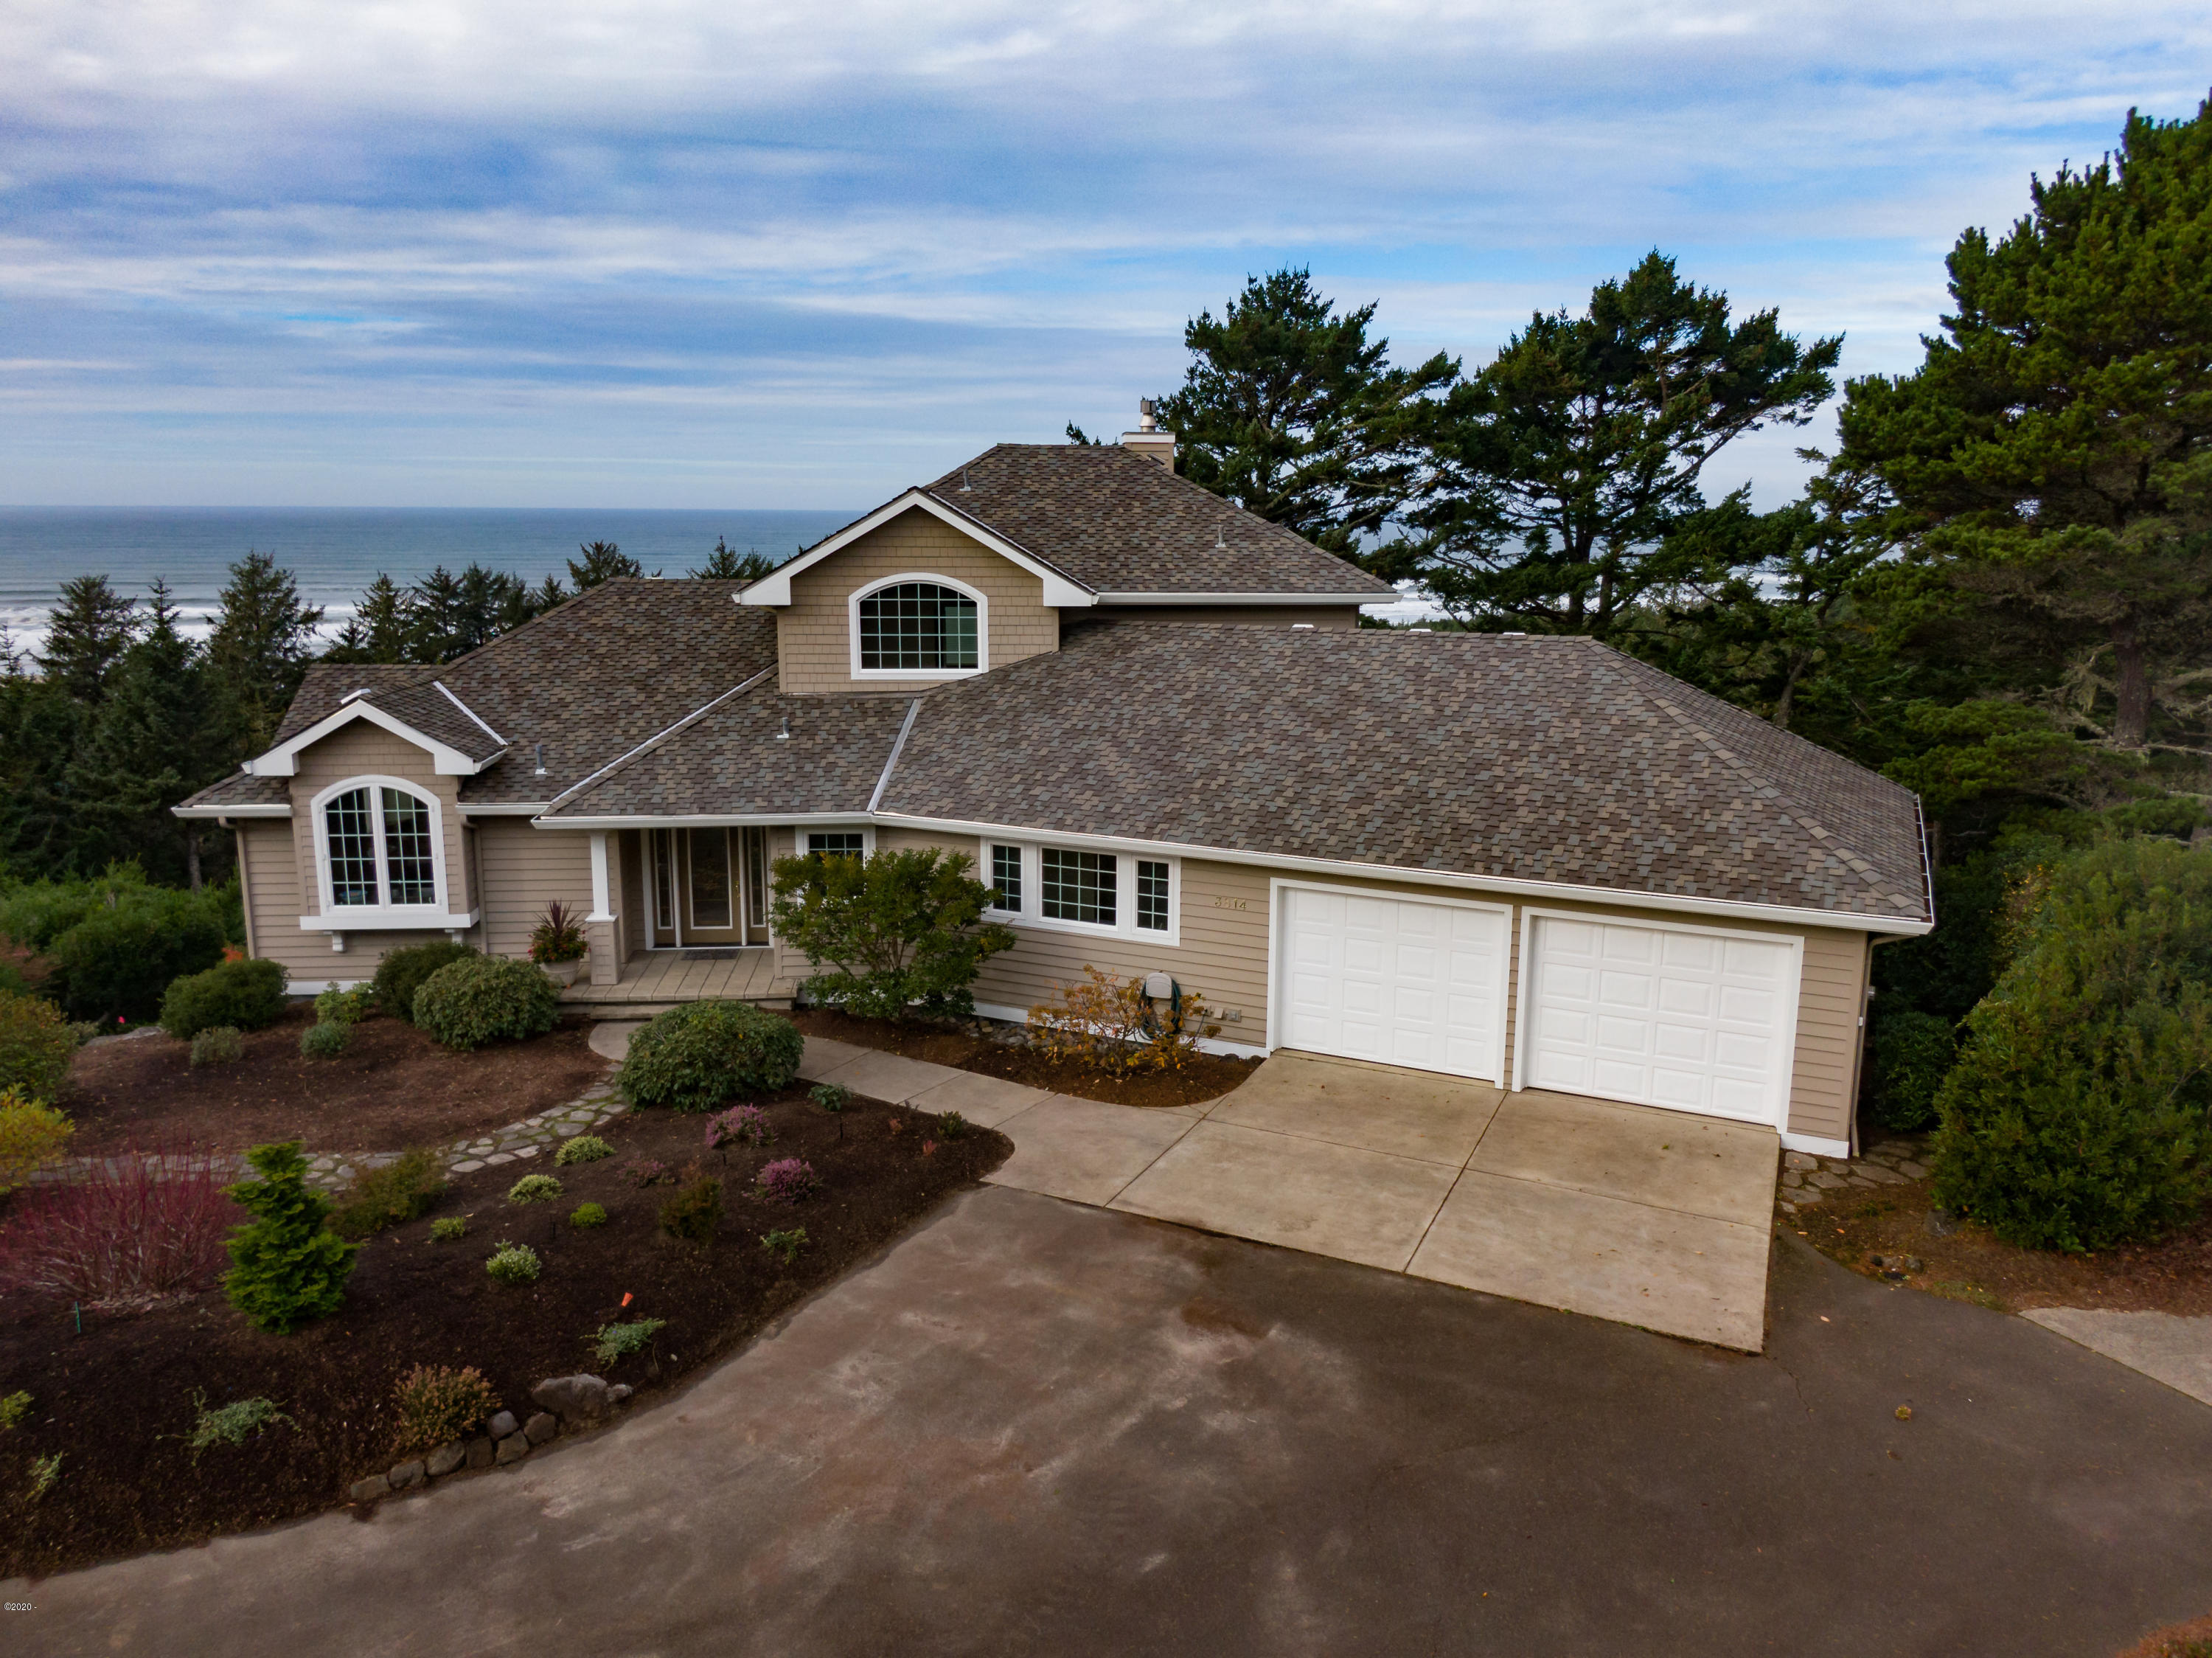 3814 NW Shore View Dr, Waldport, OR 97394